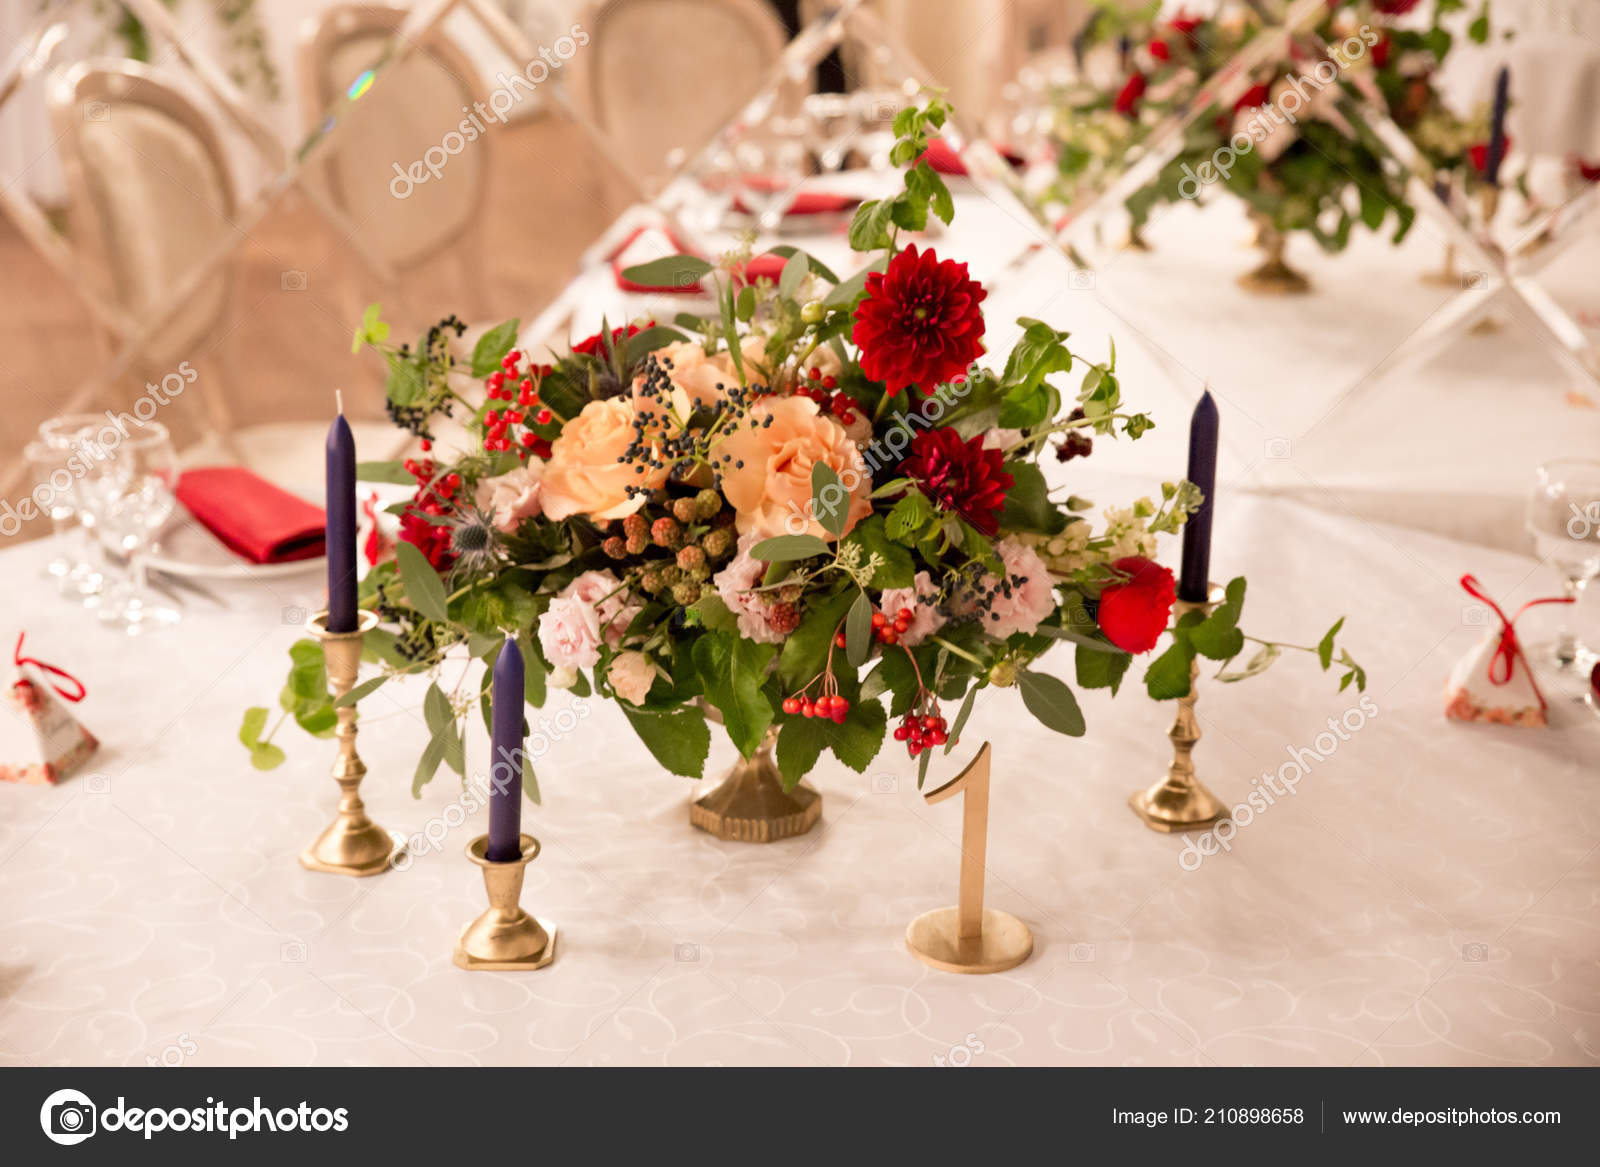 Red And White Table Settings Table Decor Wedding Ceremony